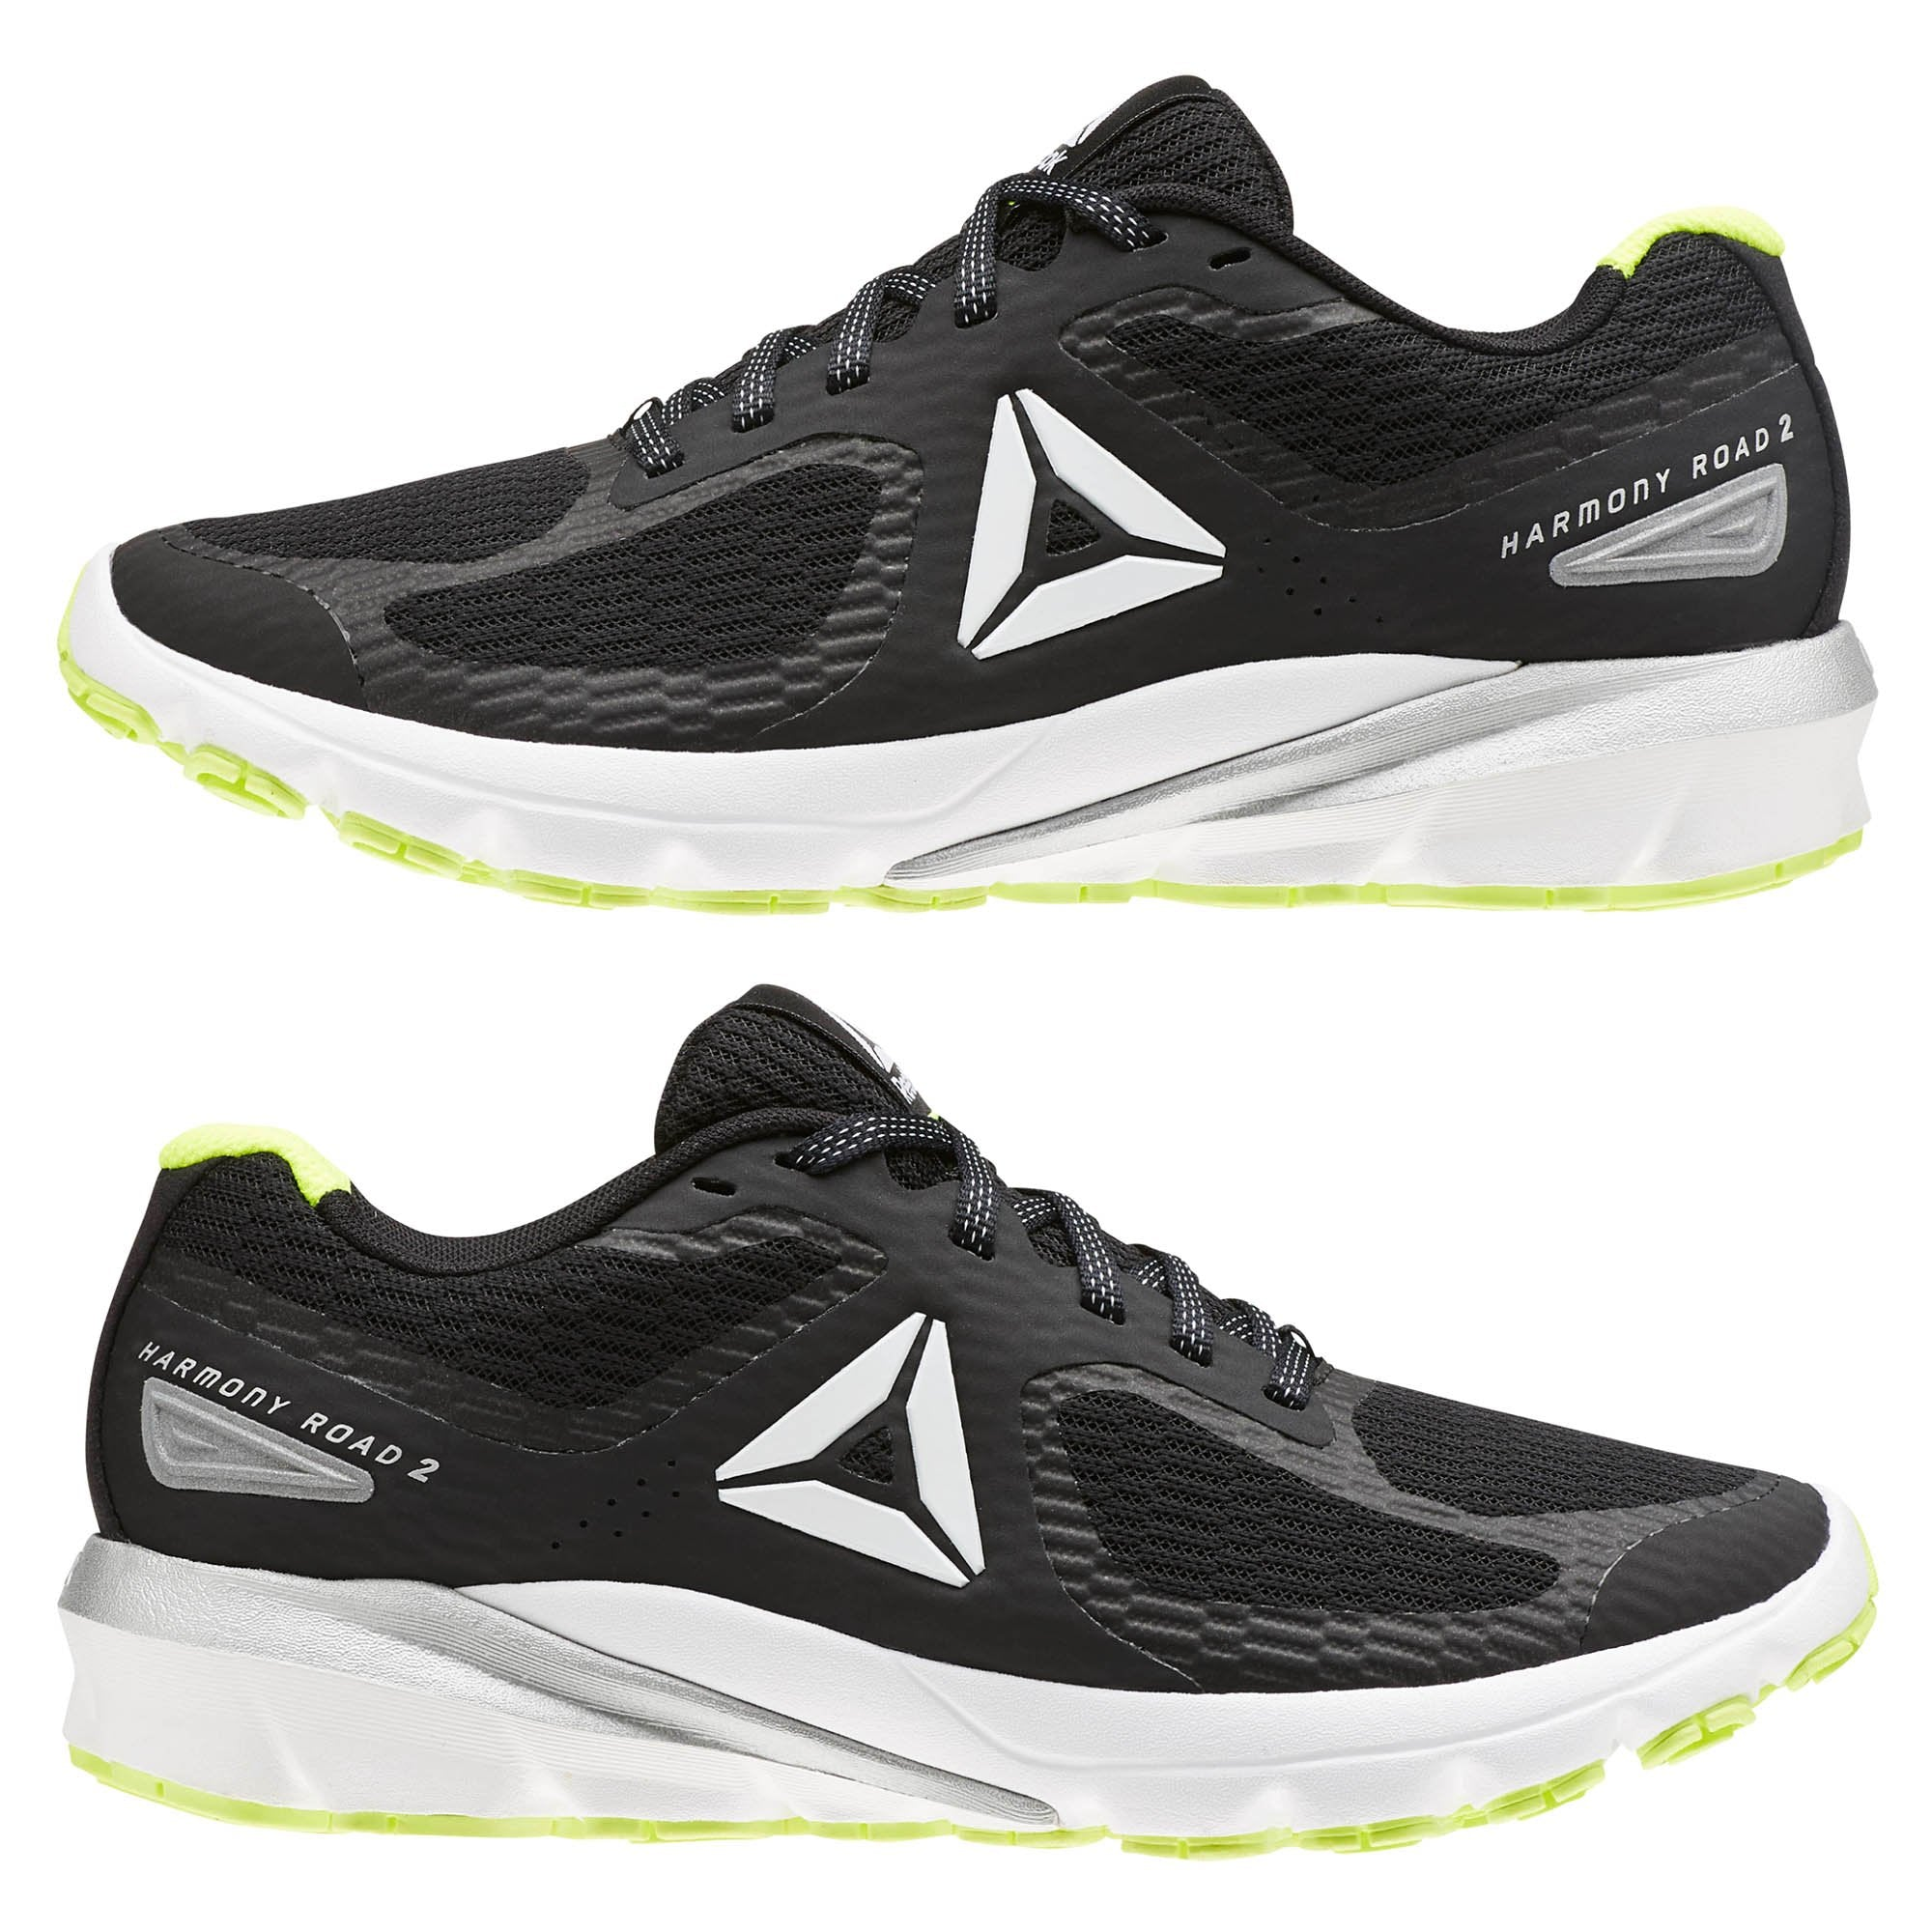 4629d8e93ac66b Buy Reebok Women OSR Harmony Road 2 Running Shoes